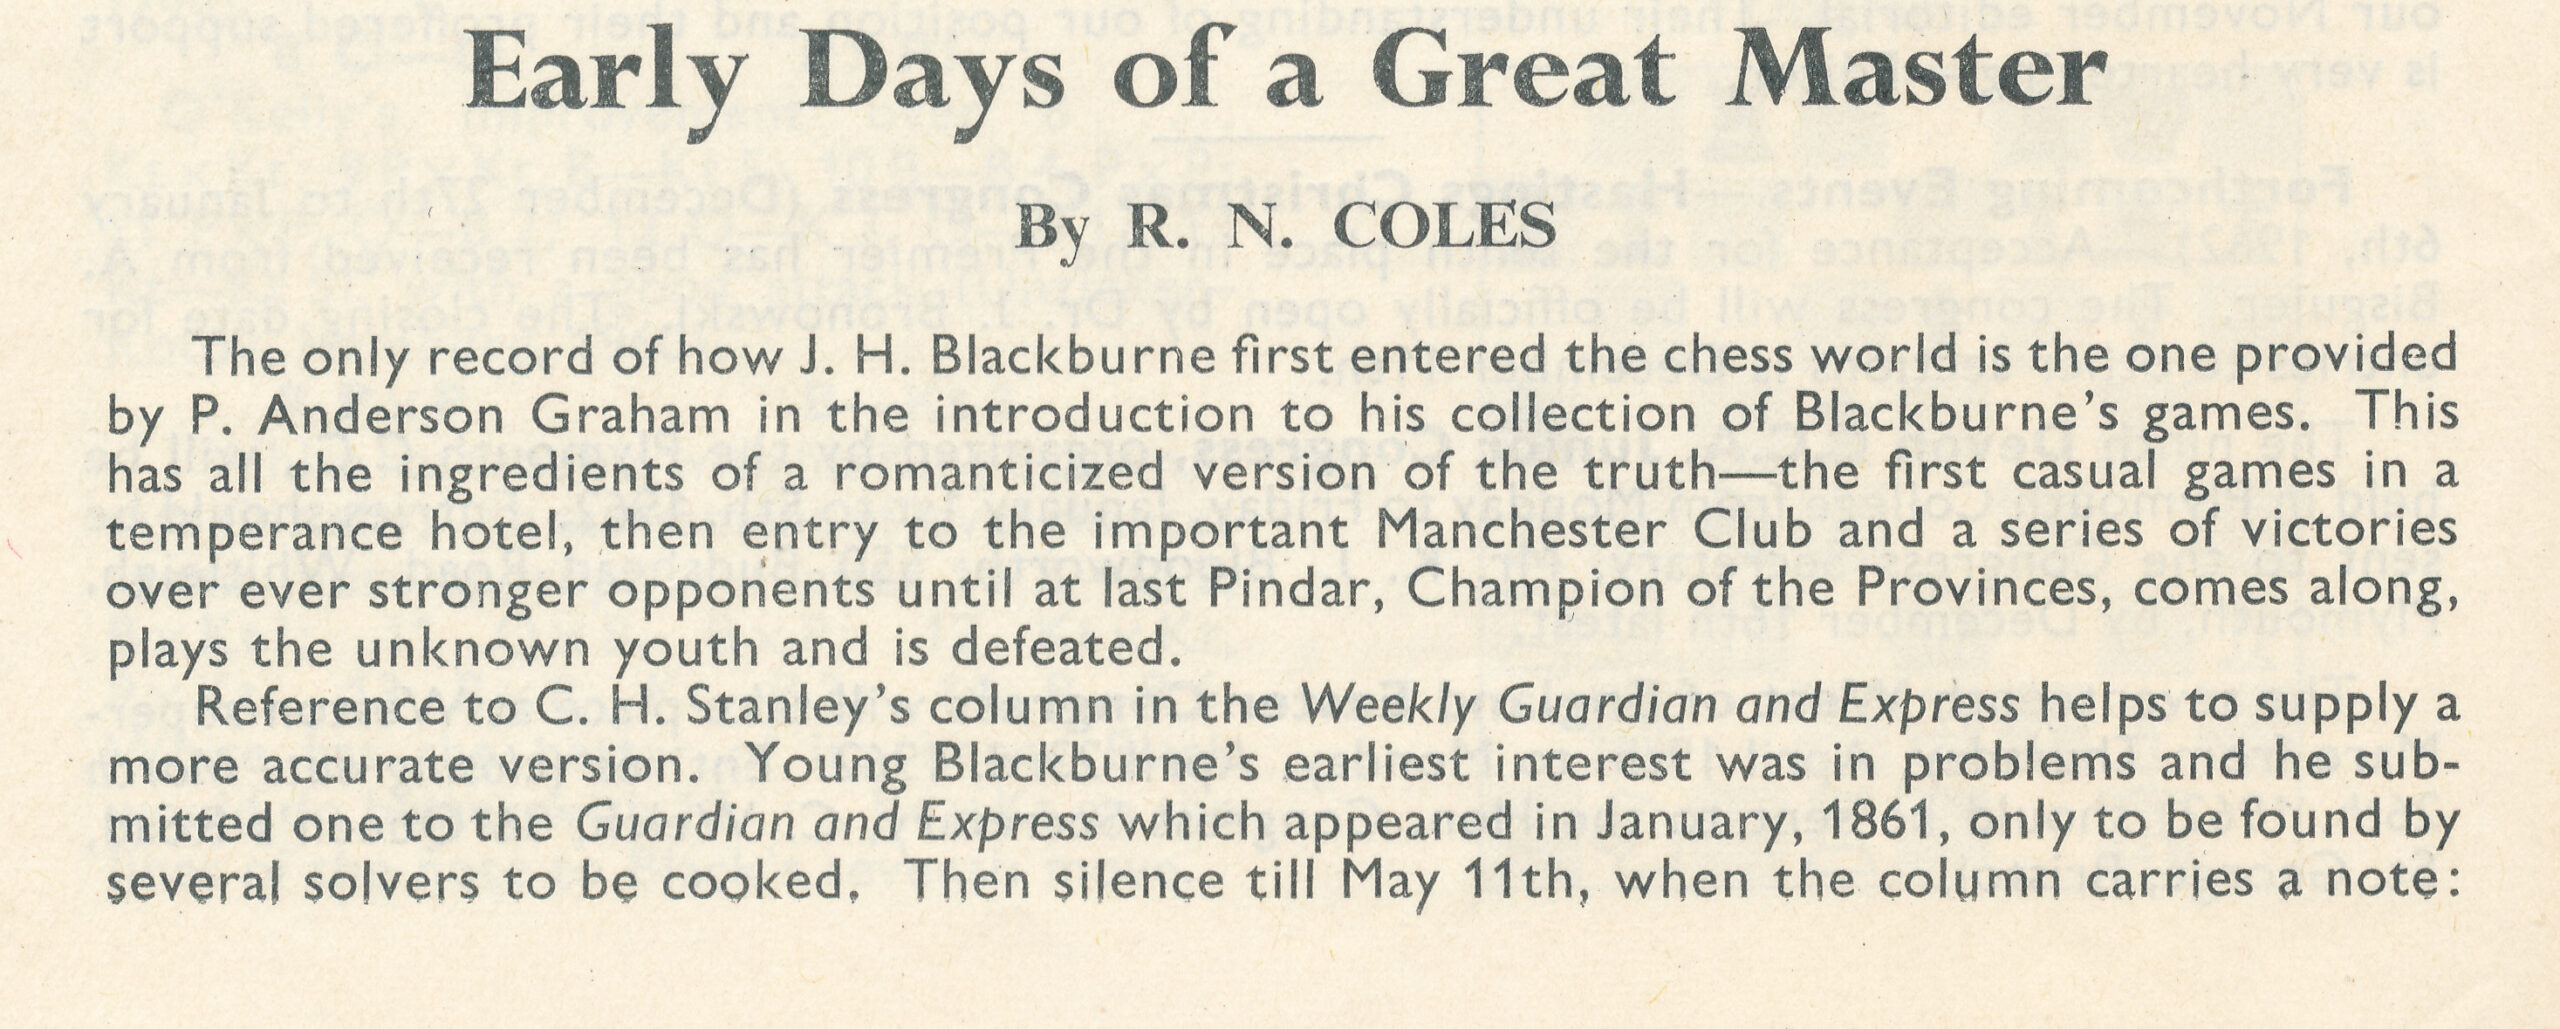 British Chess Magazine, Volume LXXX1 (1961), Number 12 (December), page 340